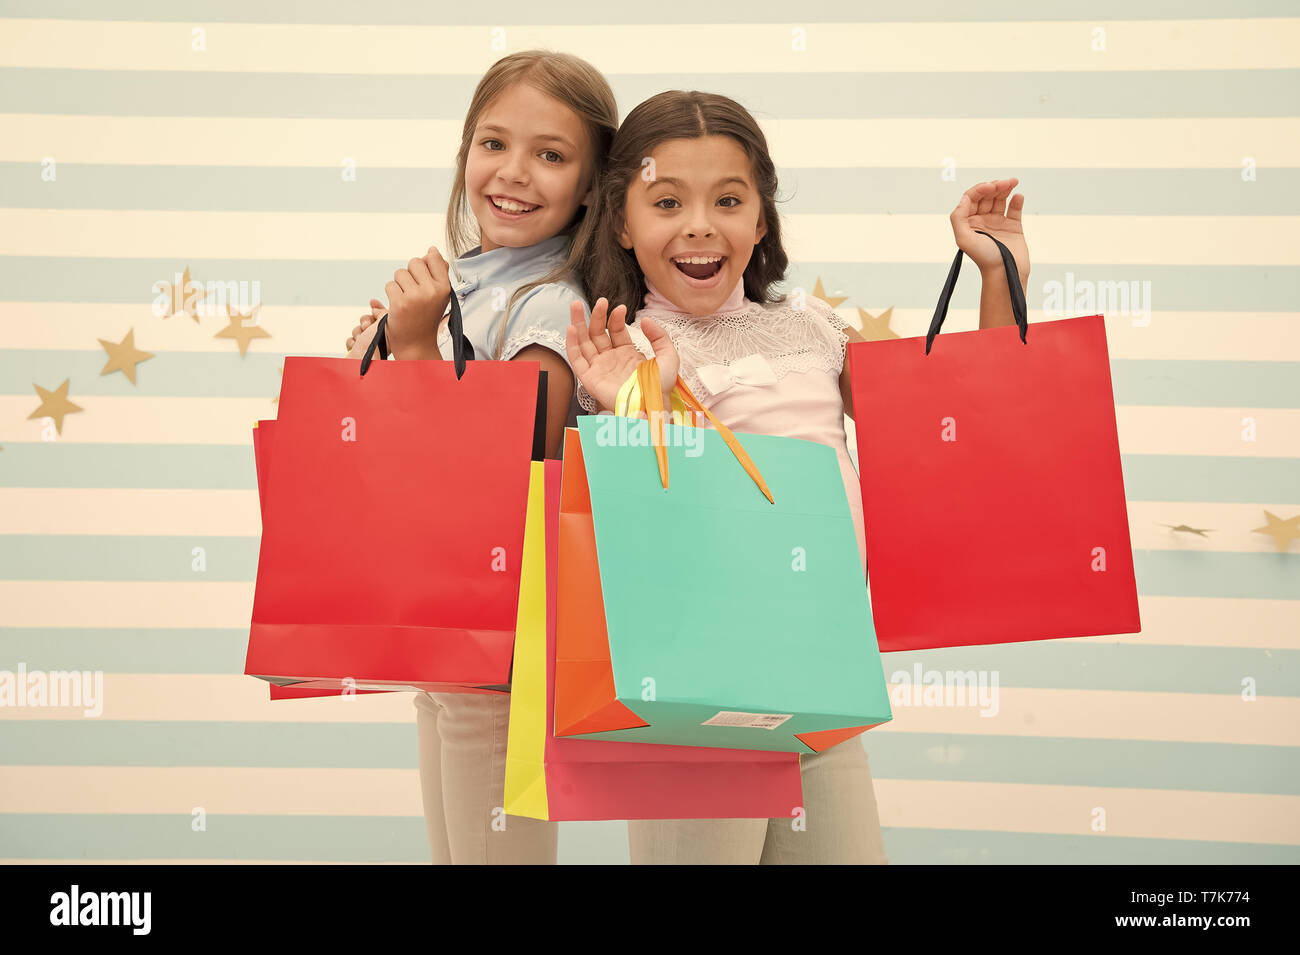 sale. happy little girl bought a lot on big sale. little girls on shopping with happy face. go shopping. Best discounts and promo codes - Stock Image